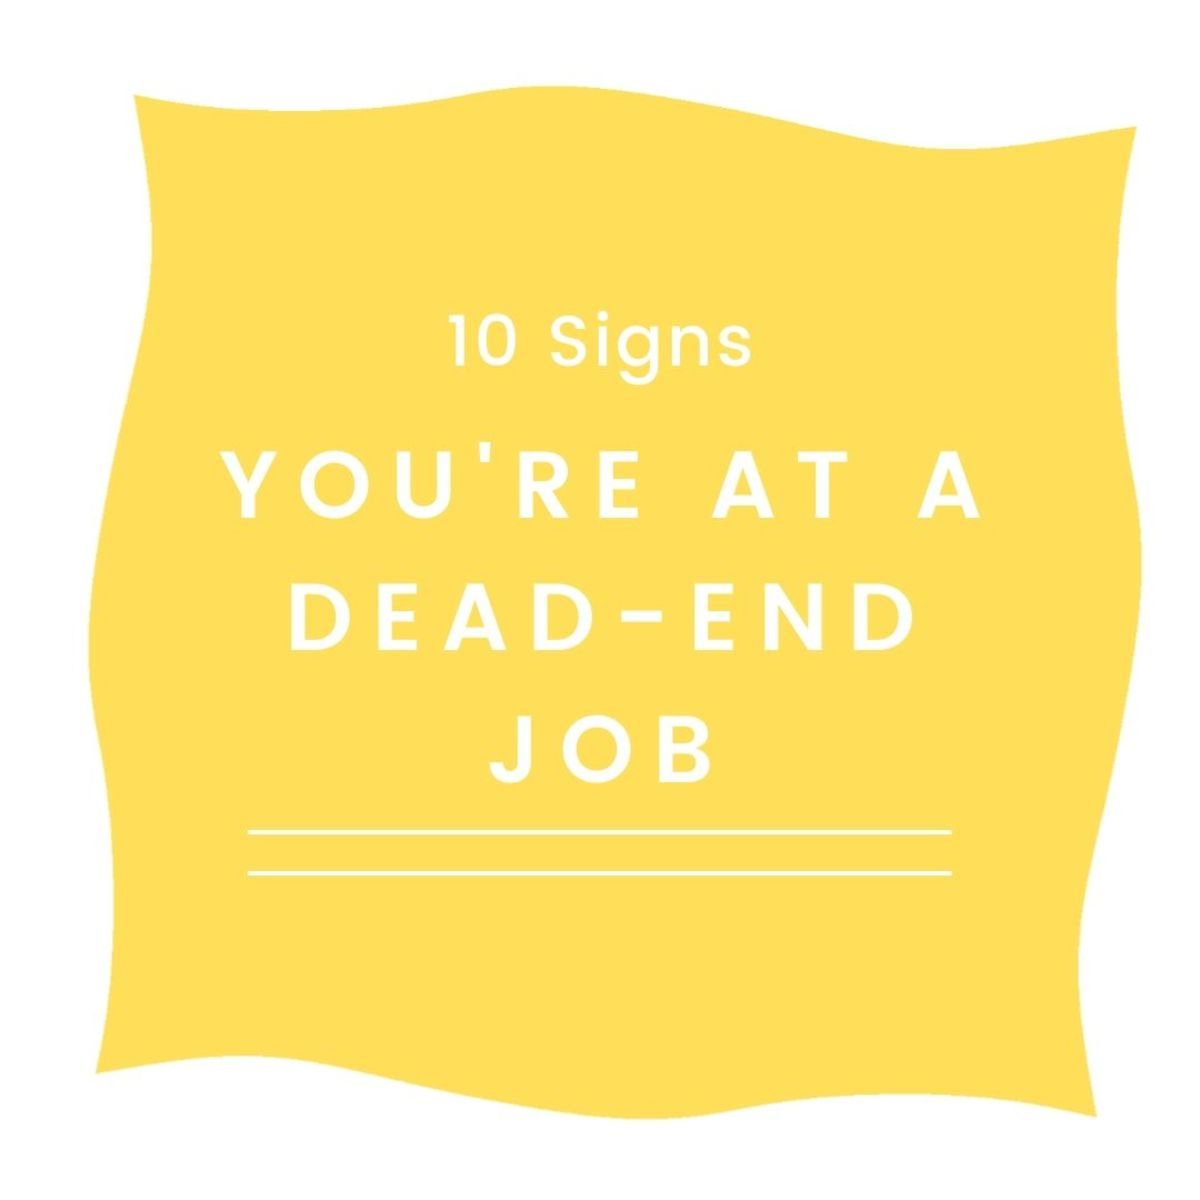 10 Signs You're at a Dead-End Job